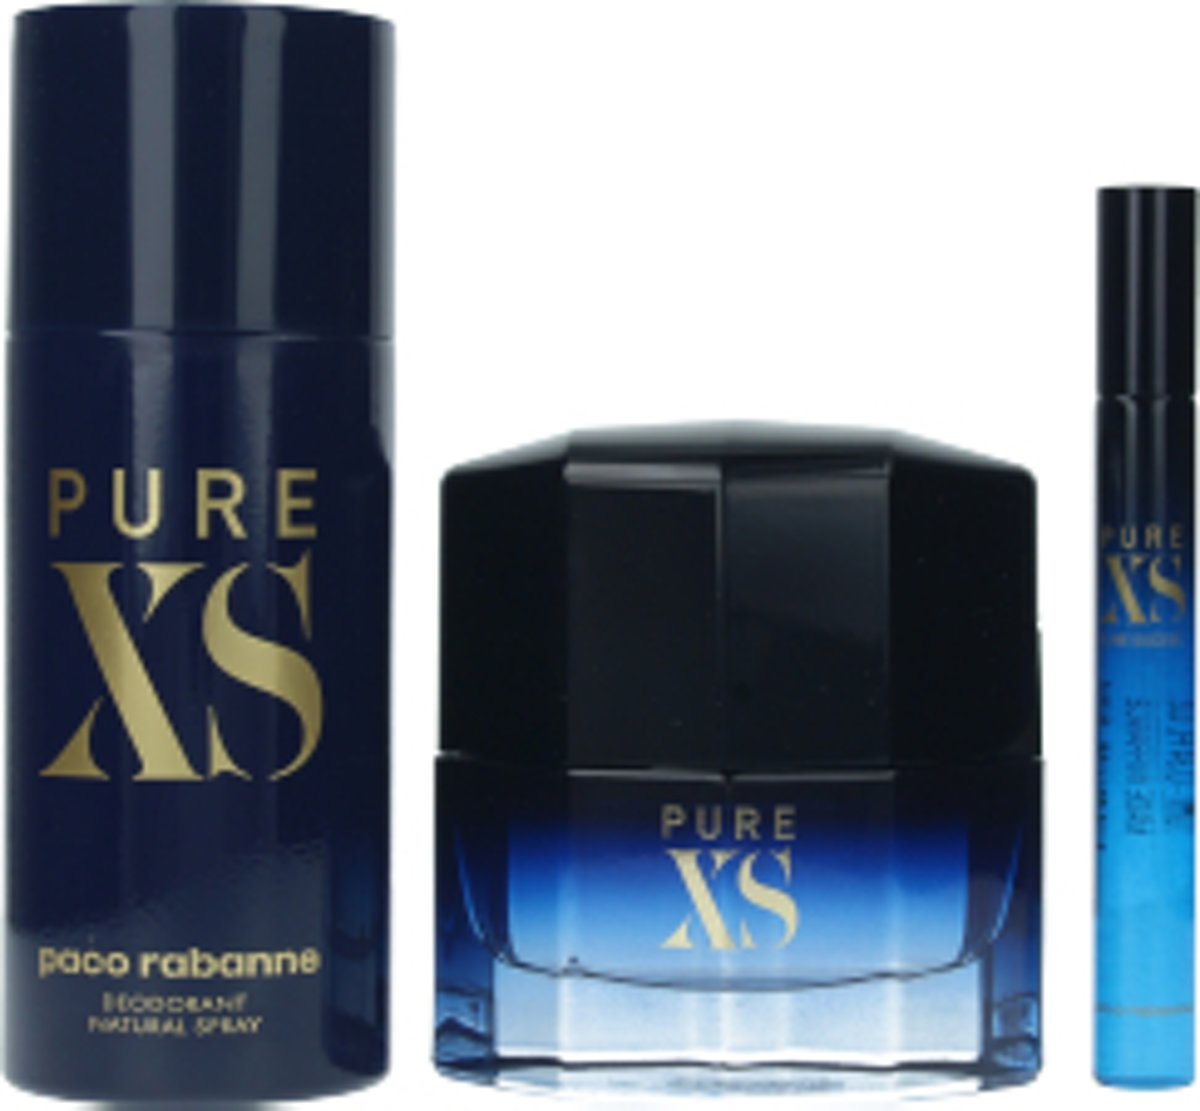 Nuxe Paco Rabanne Pure XS Eau De Toilette Spray 50ml Set 3 Pieces 2019